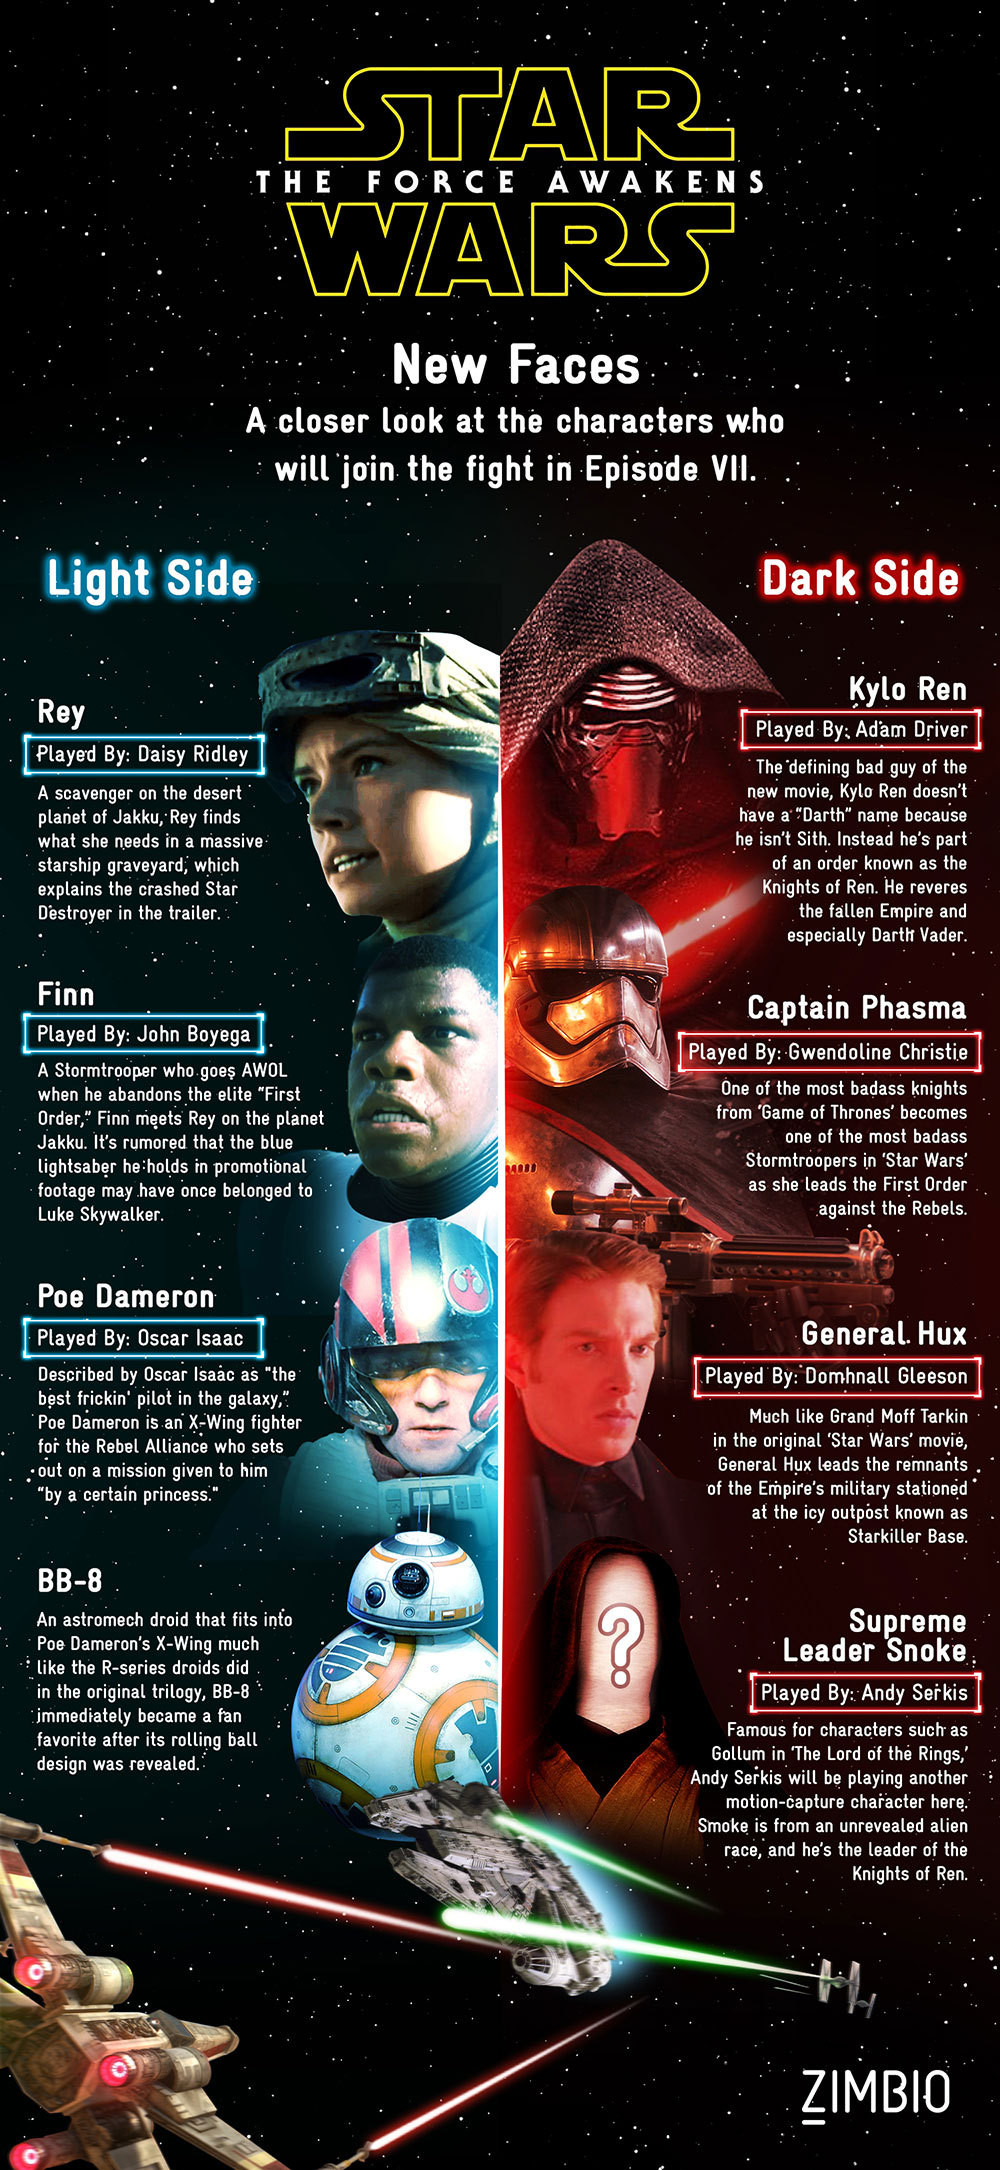 Get to Know the New Star Wars Characters in e Graphic Beyond